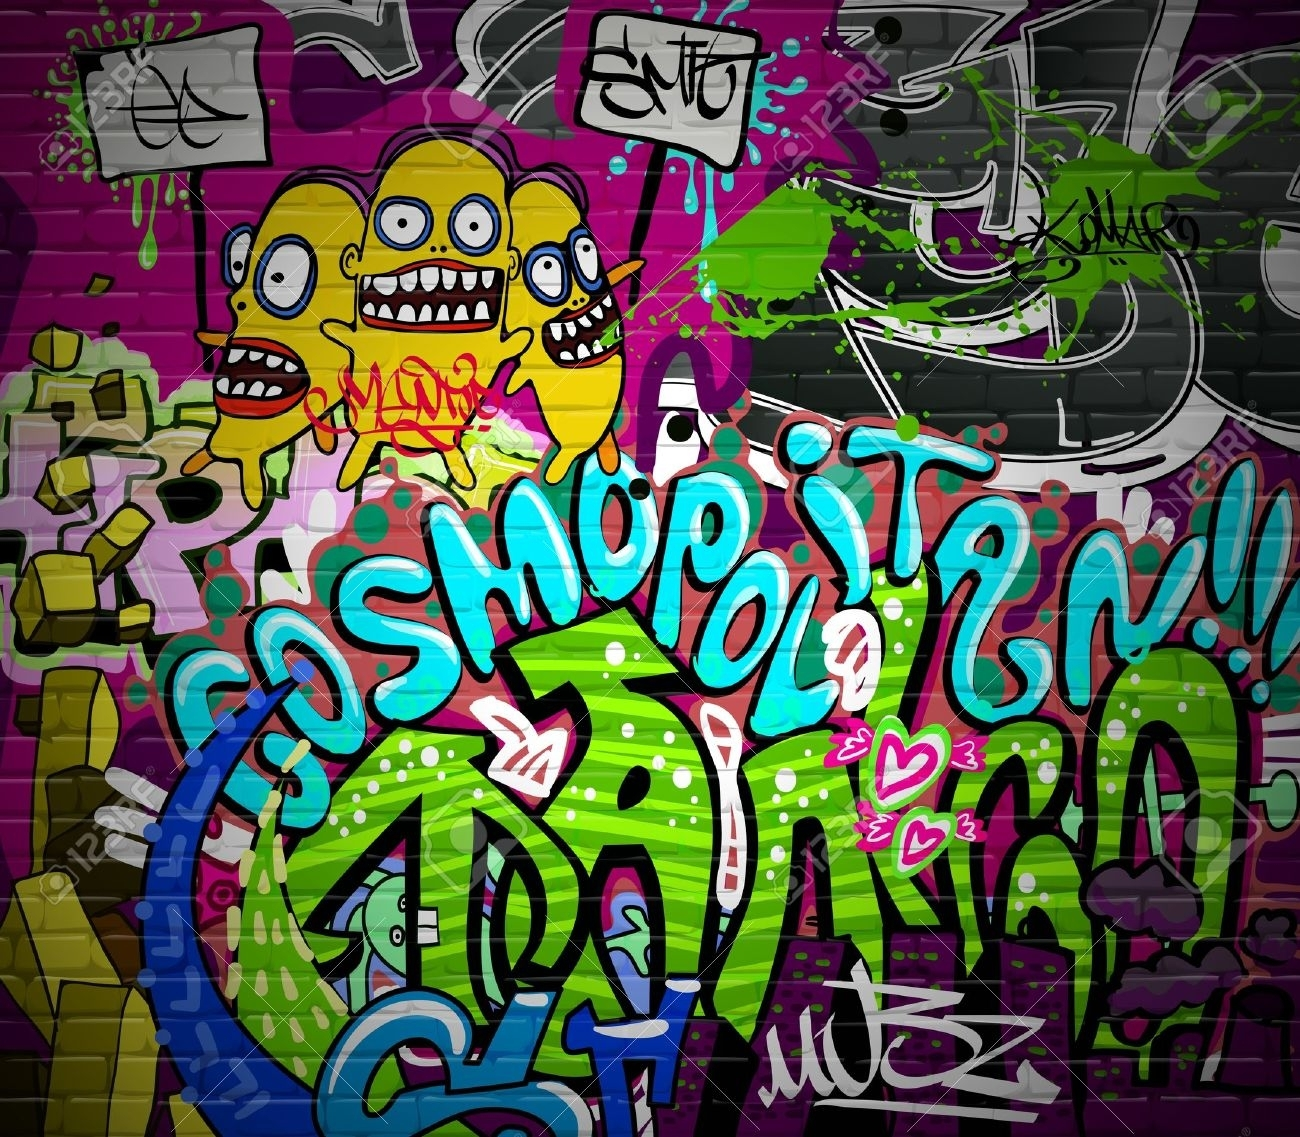 Graffiti Wall Urban Art Hintergrund Grunge Hip Hop Künstlerische Throughout Best And Newest Hip Hop Wall Art (Gallery 6 of 15)